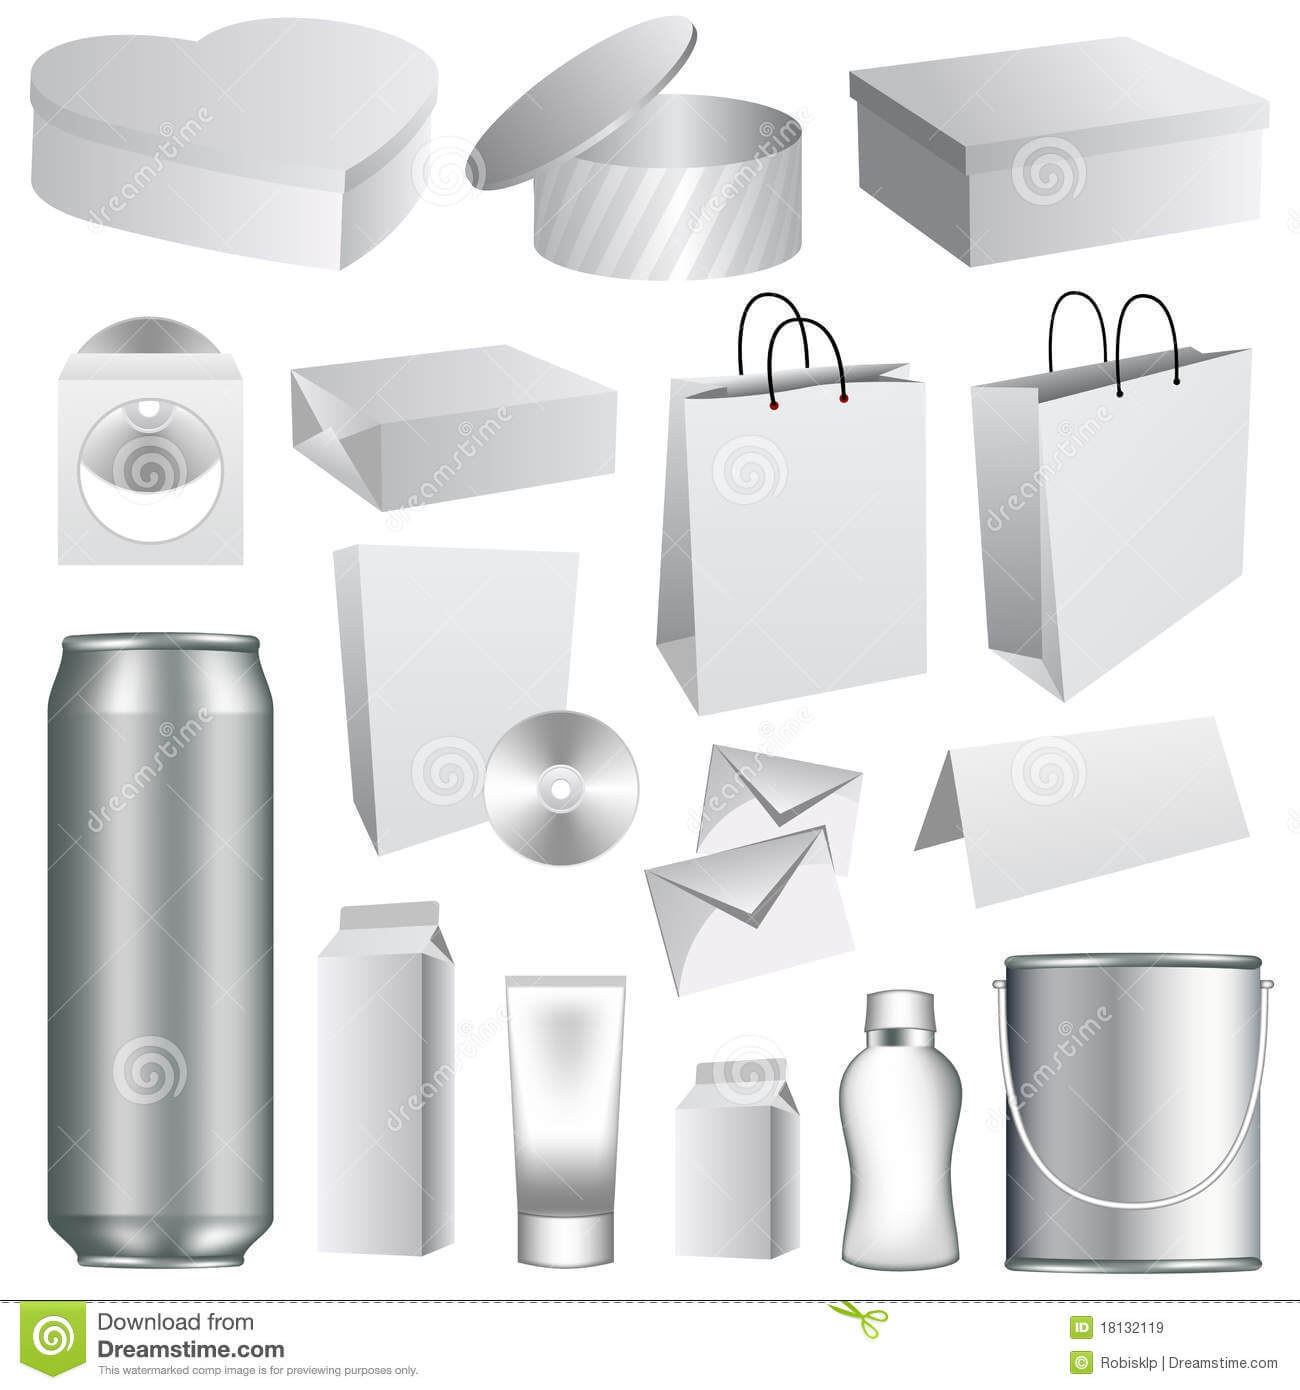 Blank Packaging Templates Stock Vector. Illustration Of With Regard To Blank Packaging Templates